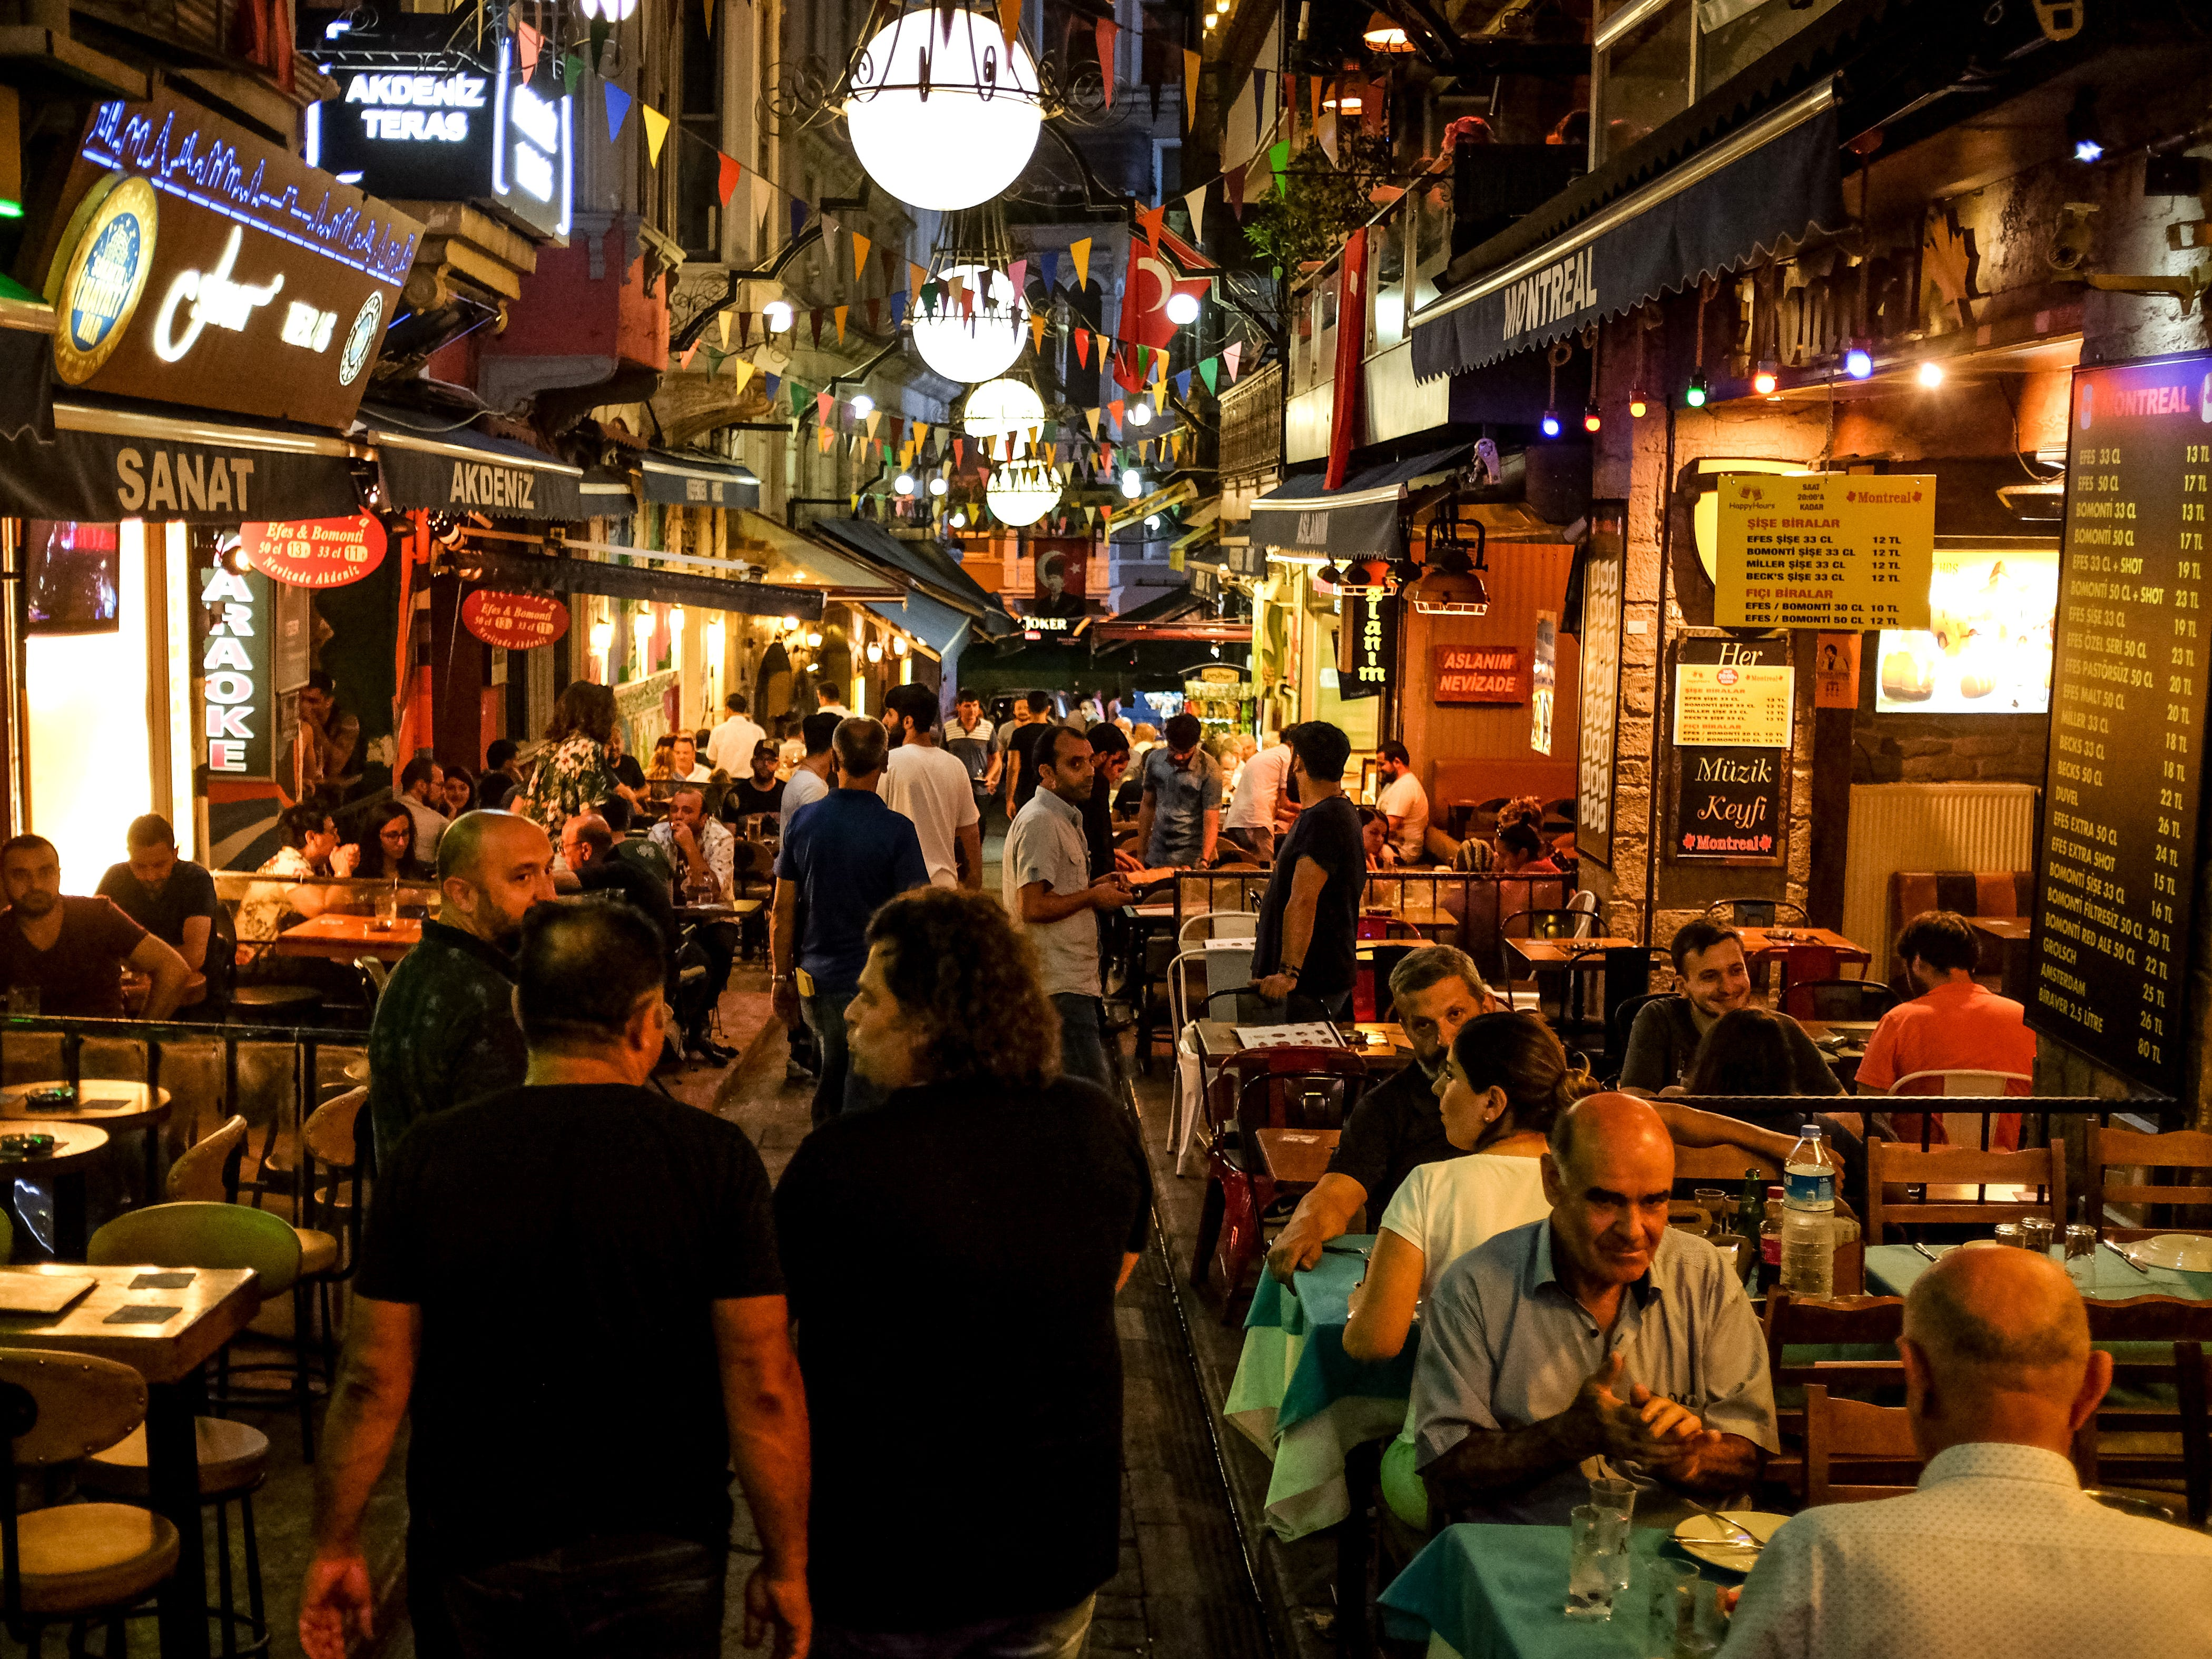 People enjoy food and drink at a popular restaurant street on Aug. 15, 2018 in Istanbul.